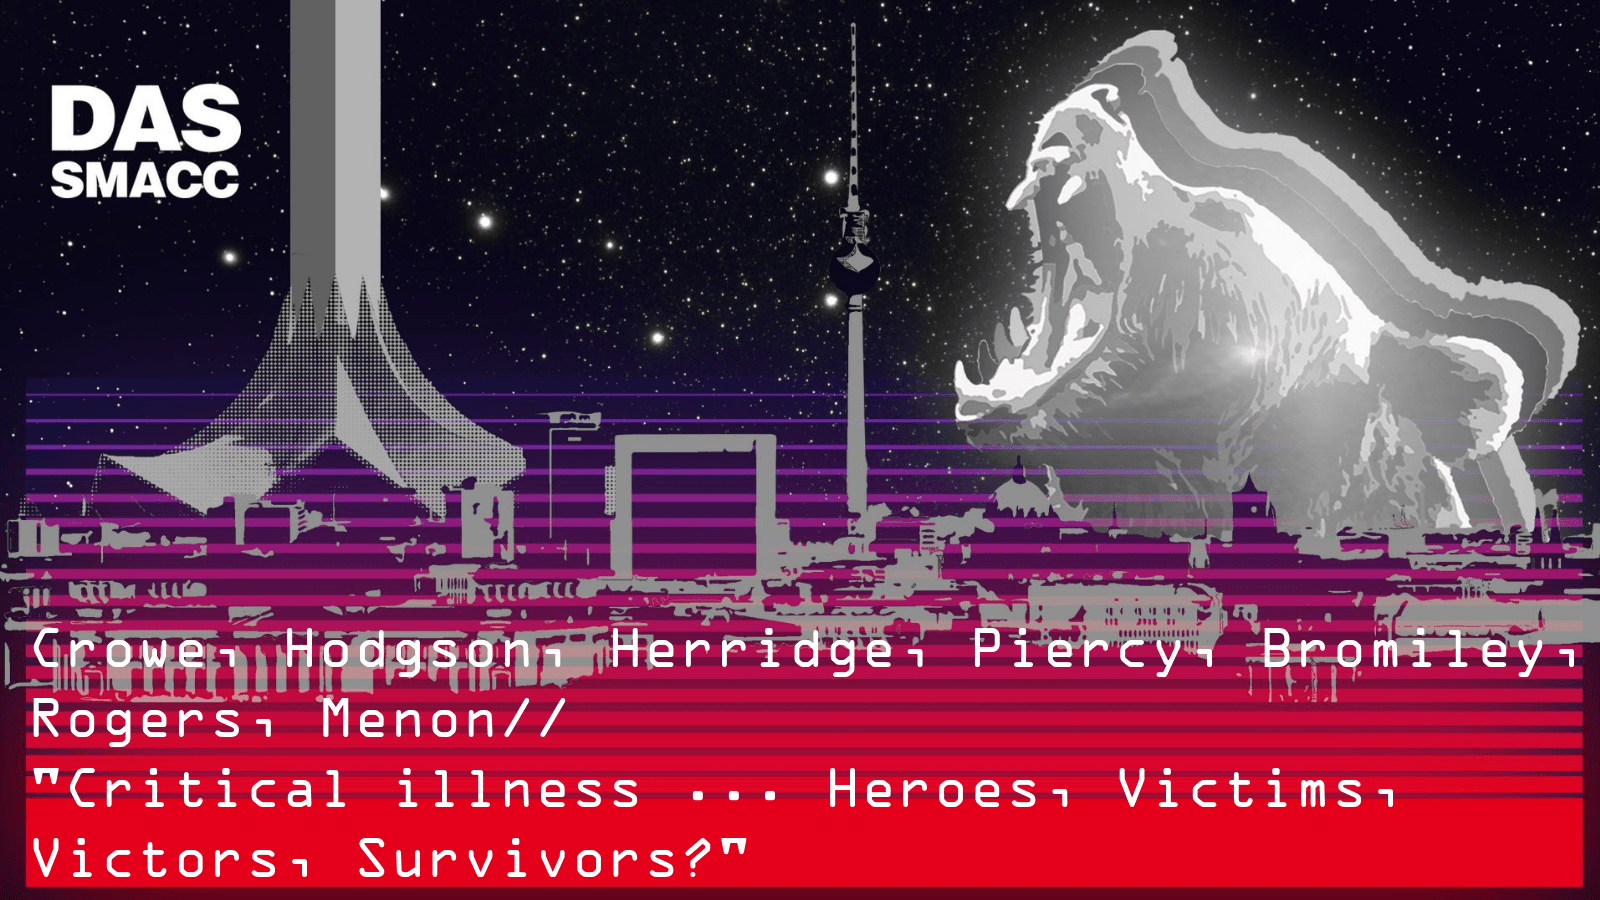 Critical illness ... Heroes, Victims, Victors, Survivors?